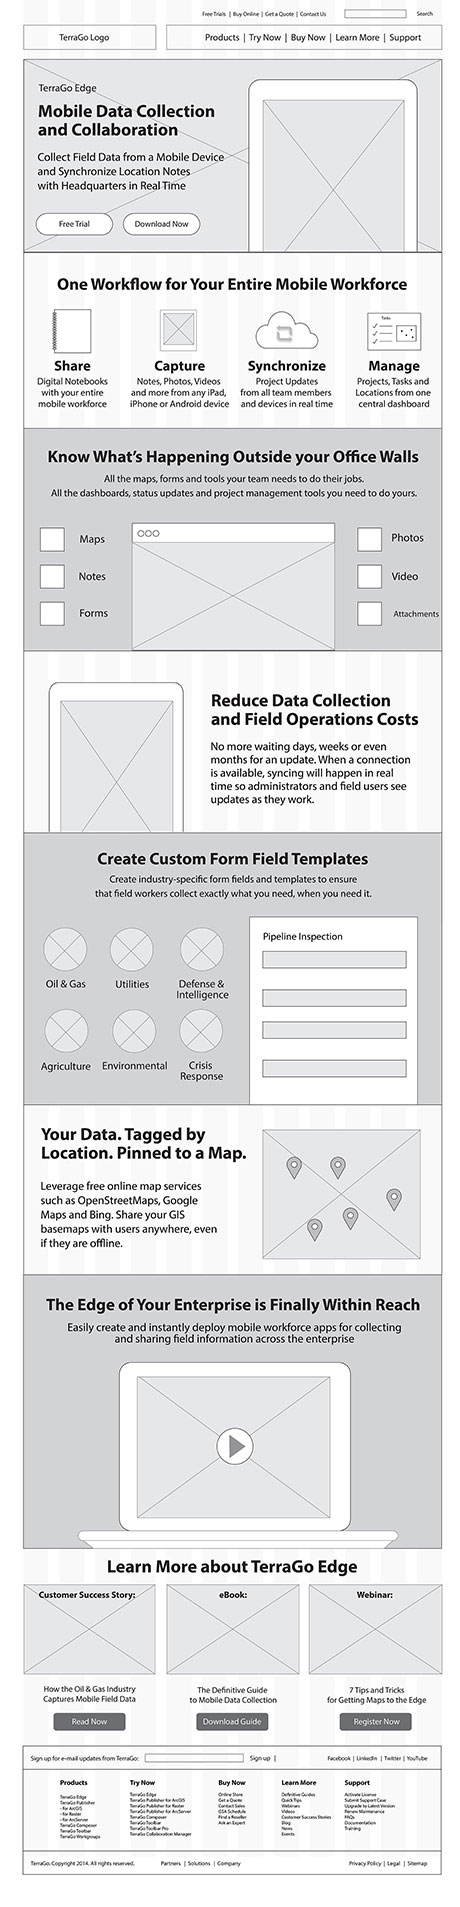 TerraGo Edge Product Page Wireframe